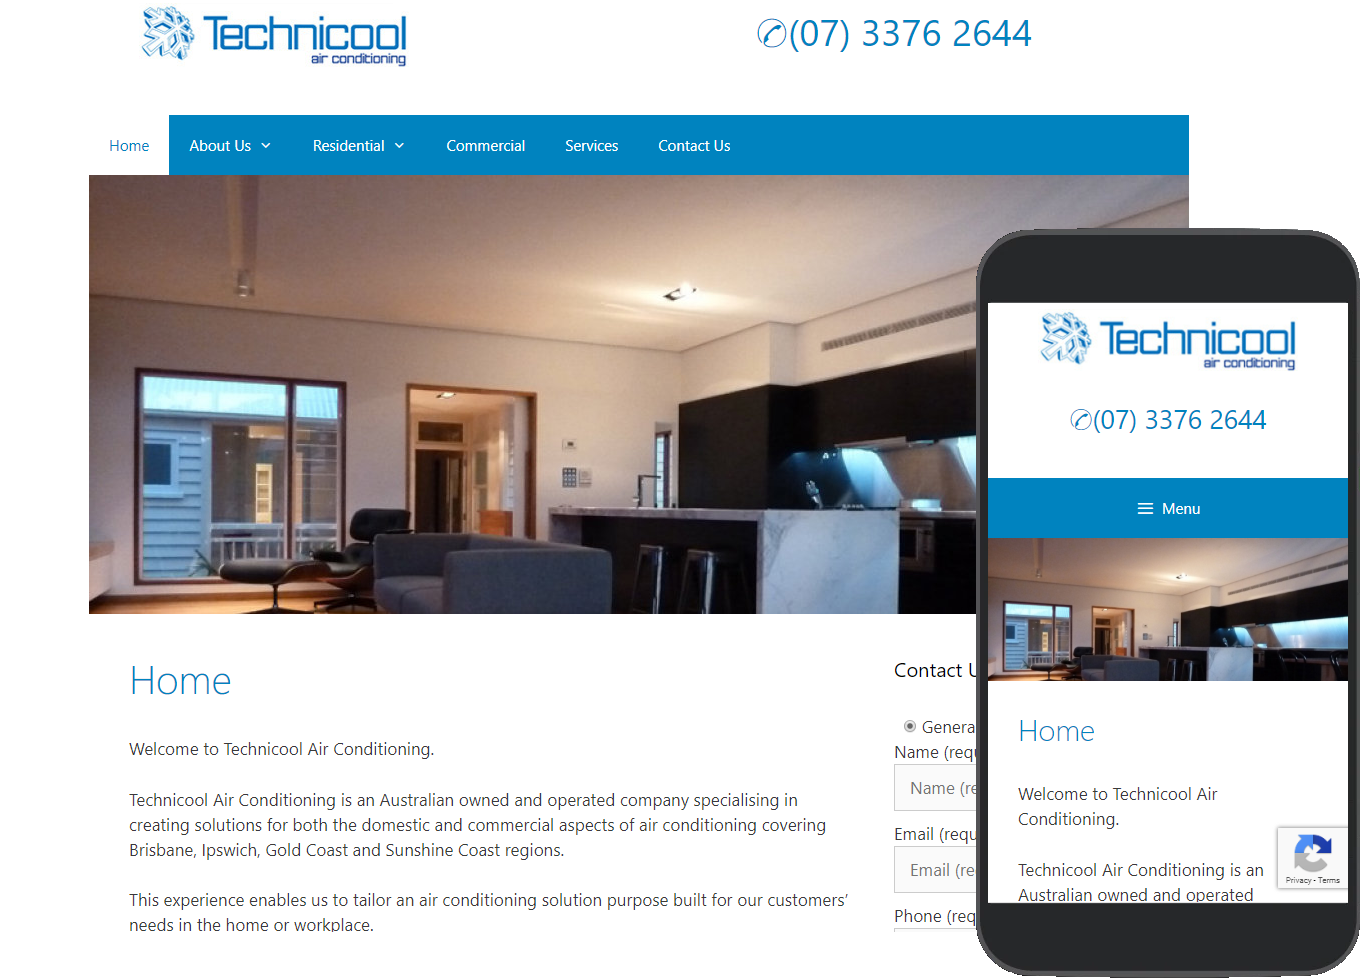 Technicool Australia website portfolio images of desktop and mobile view